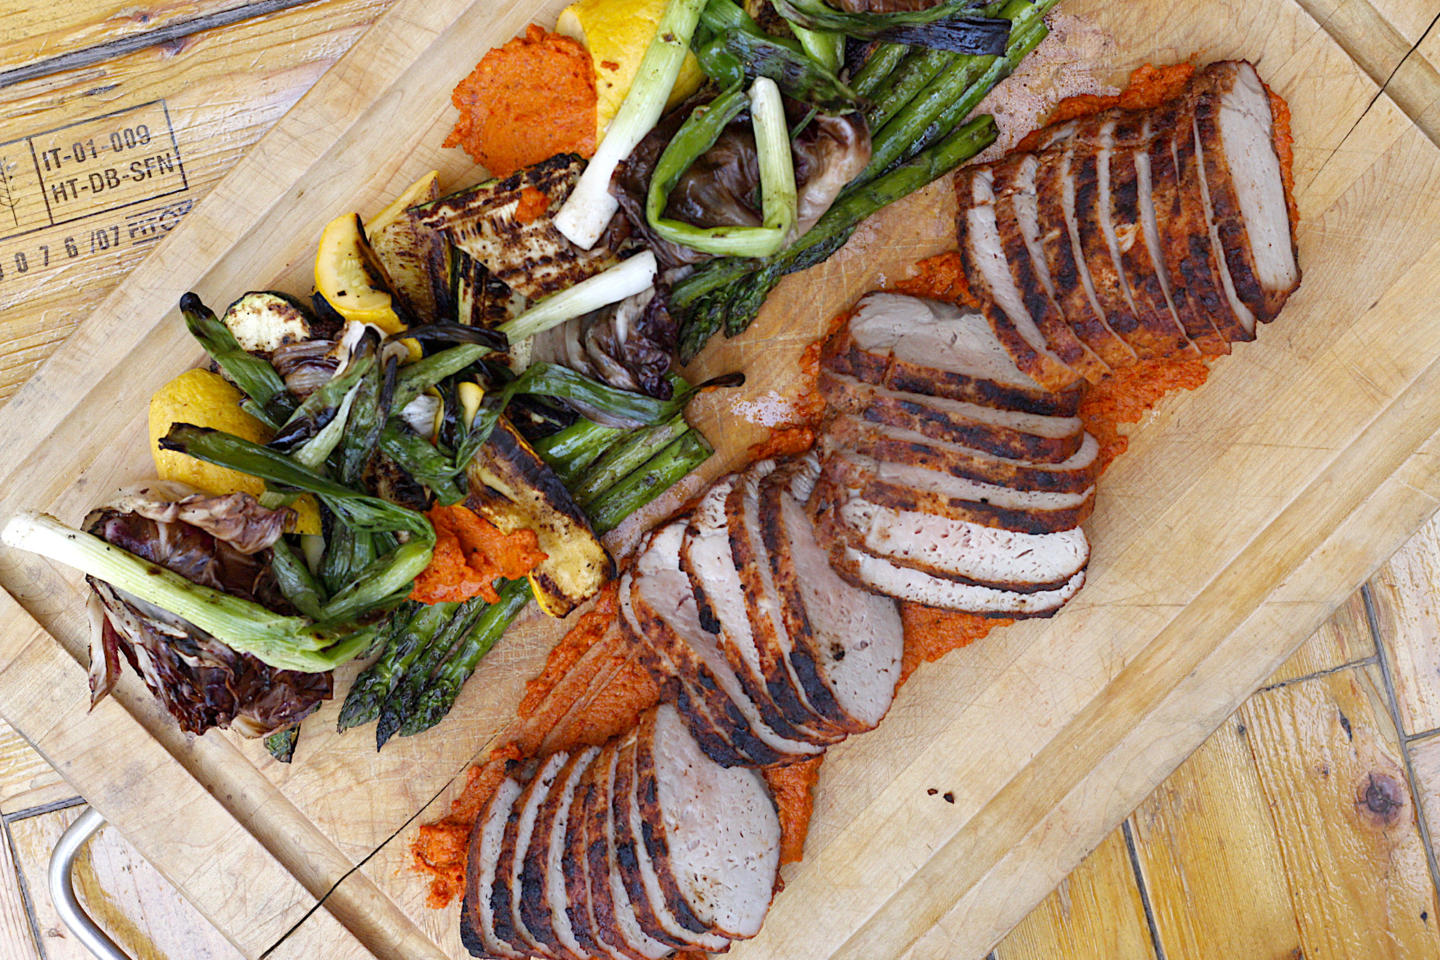 Grilled Pork Loin with vegetables